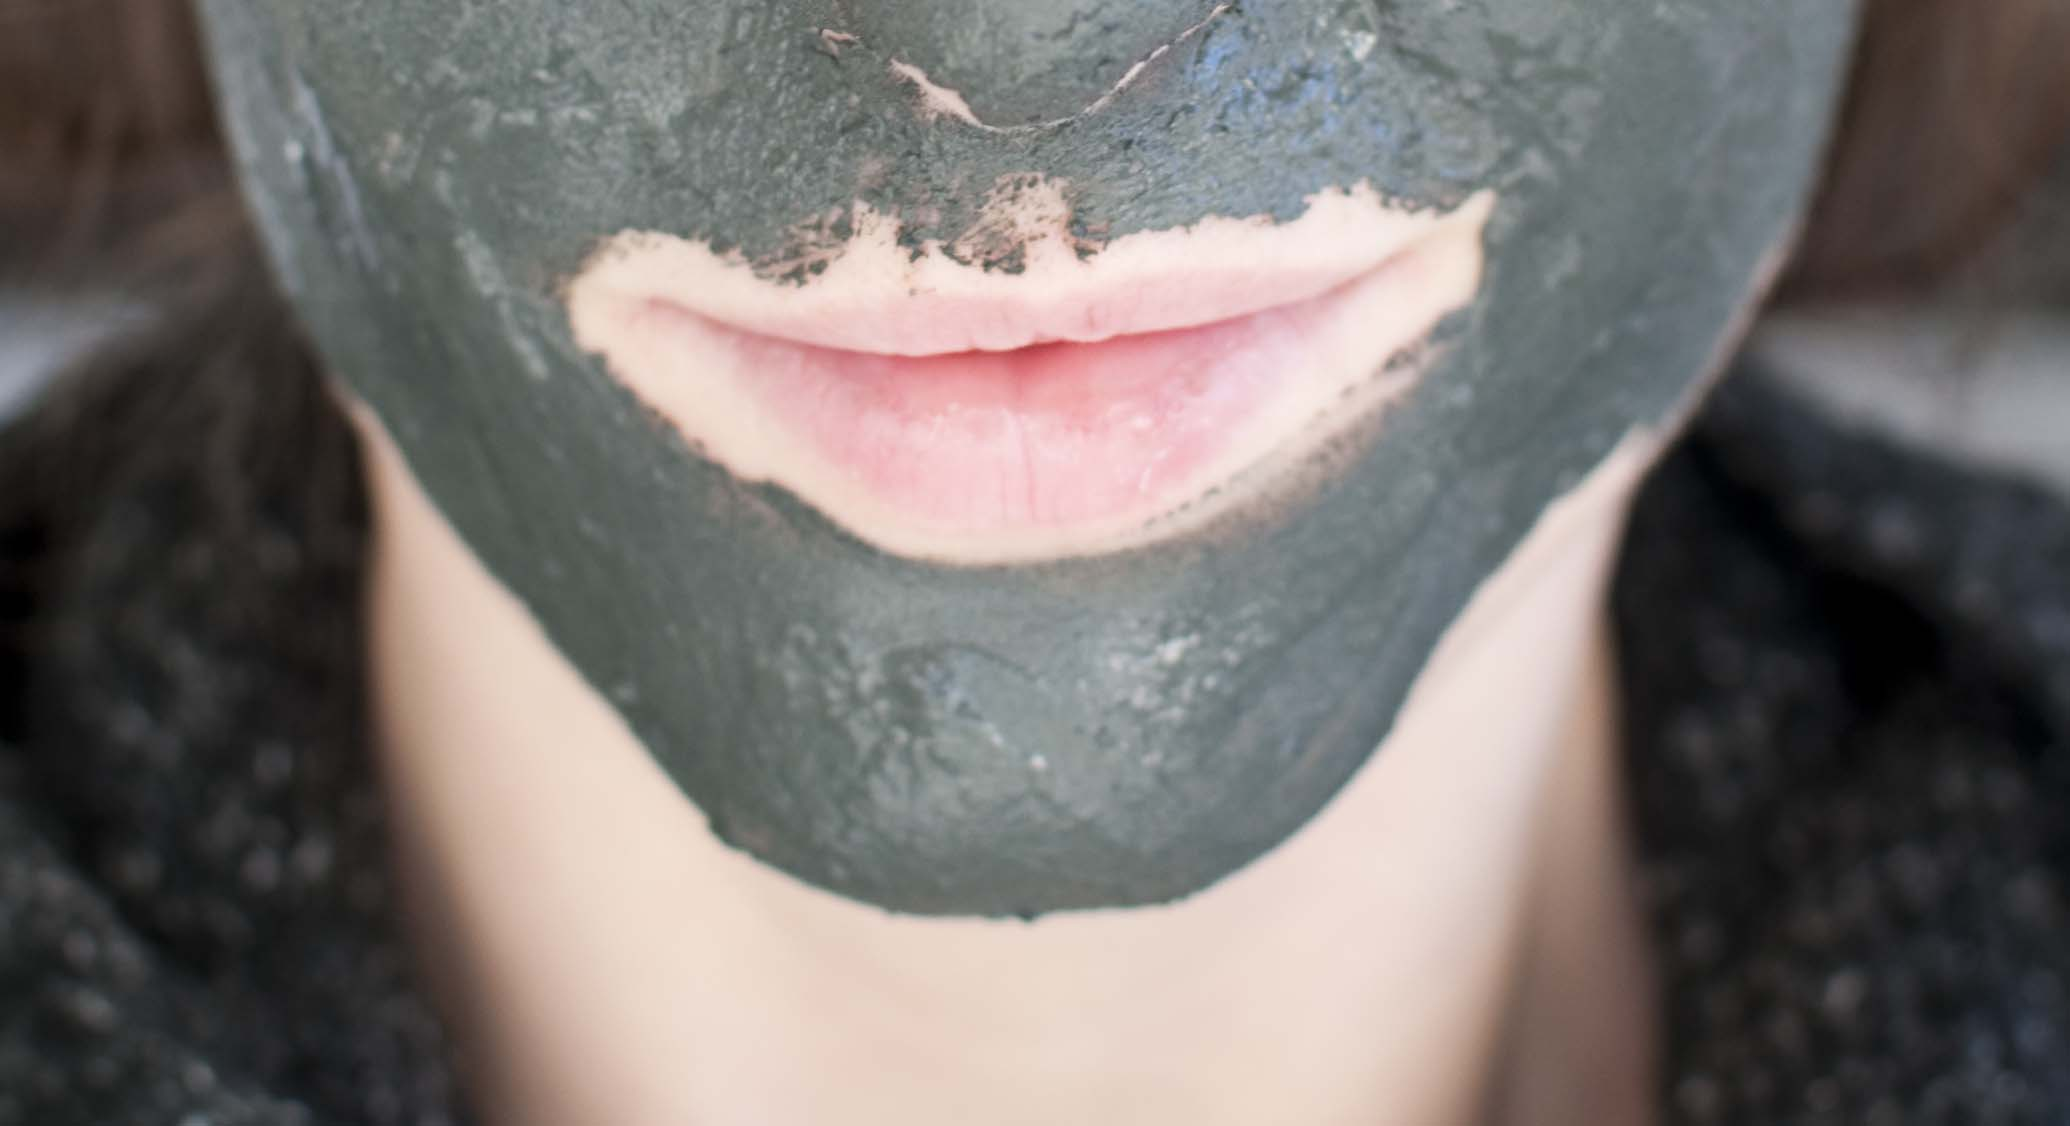 diy charcaol face mask